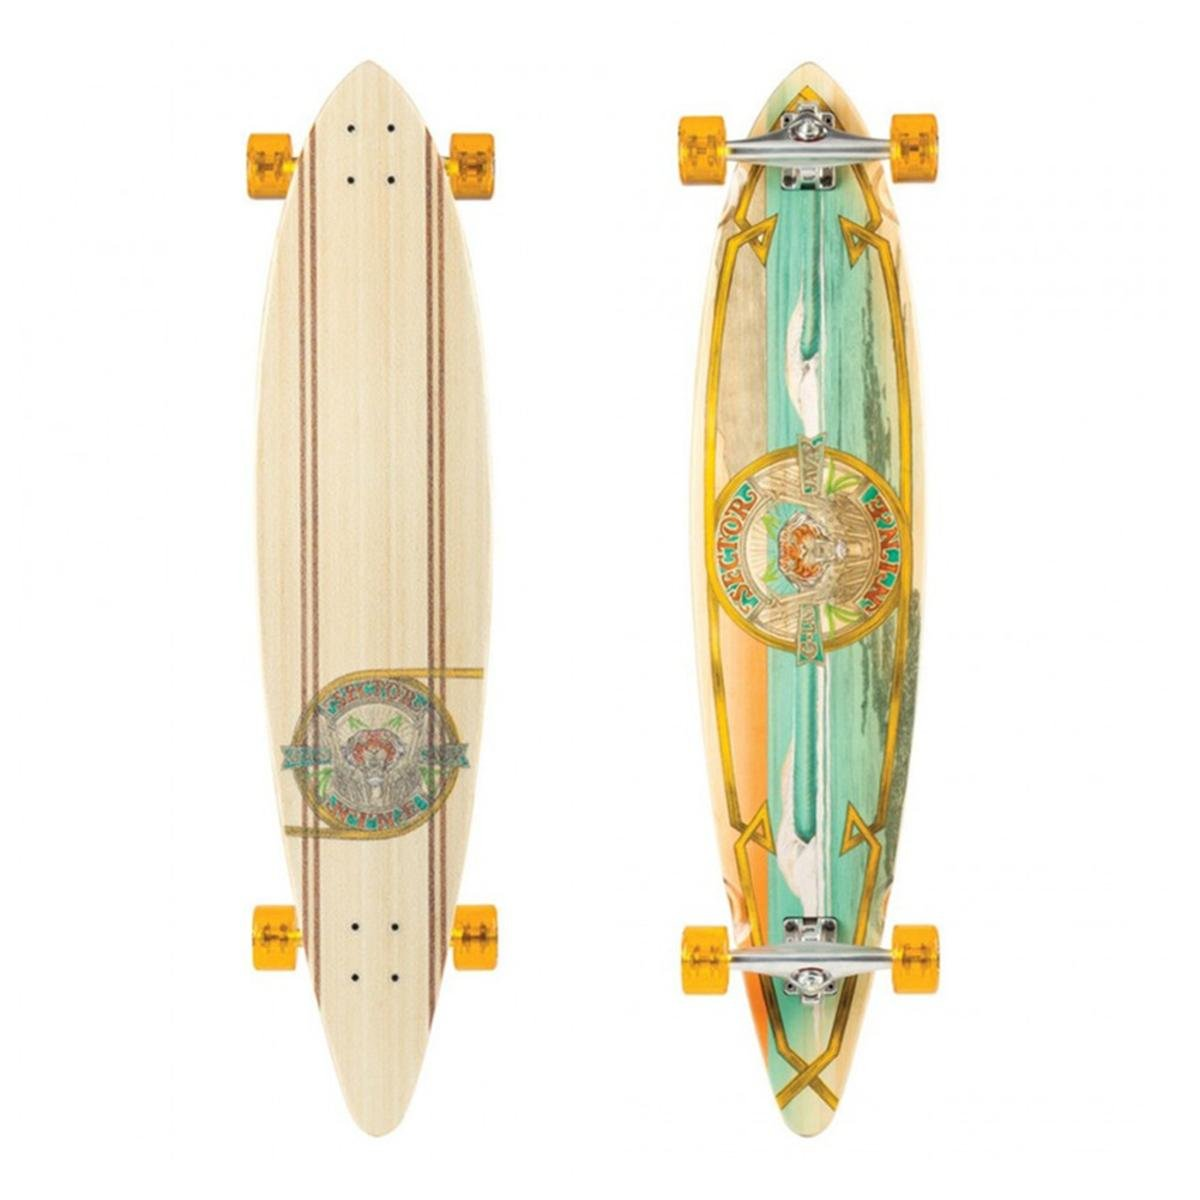 Sector 9 G-Land Complete Skateboard, 44.0 x 9.75 x 30.5-Inch, Assorted by Sector 9